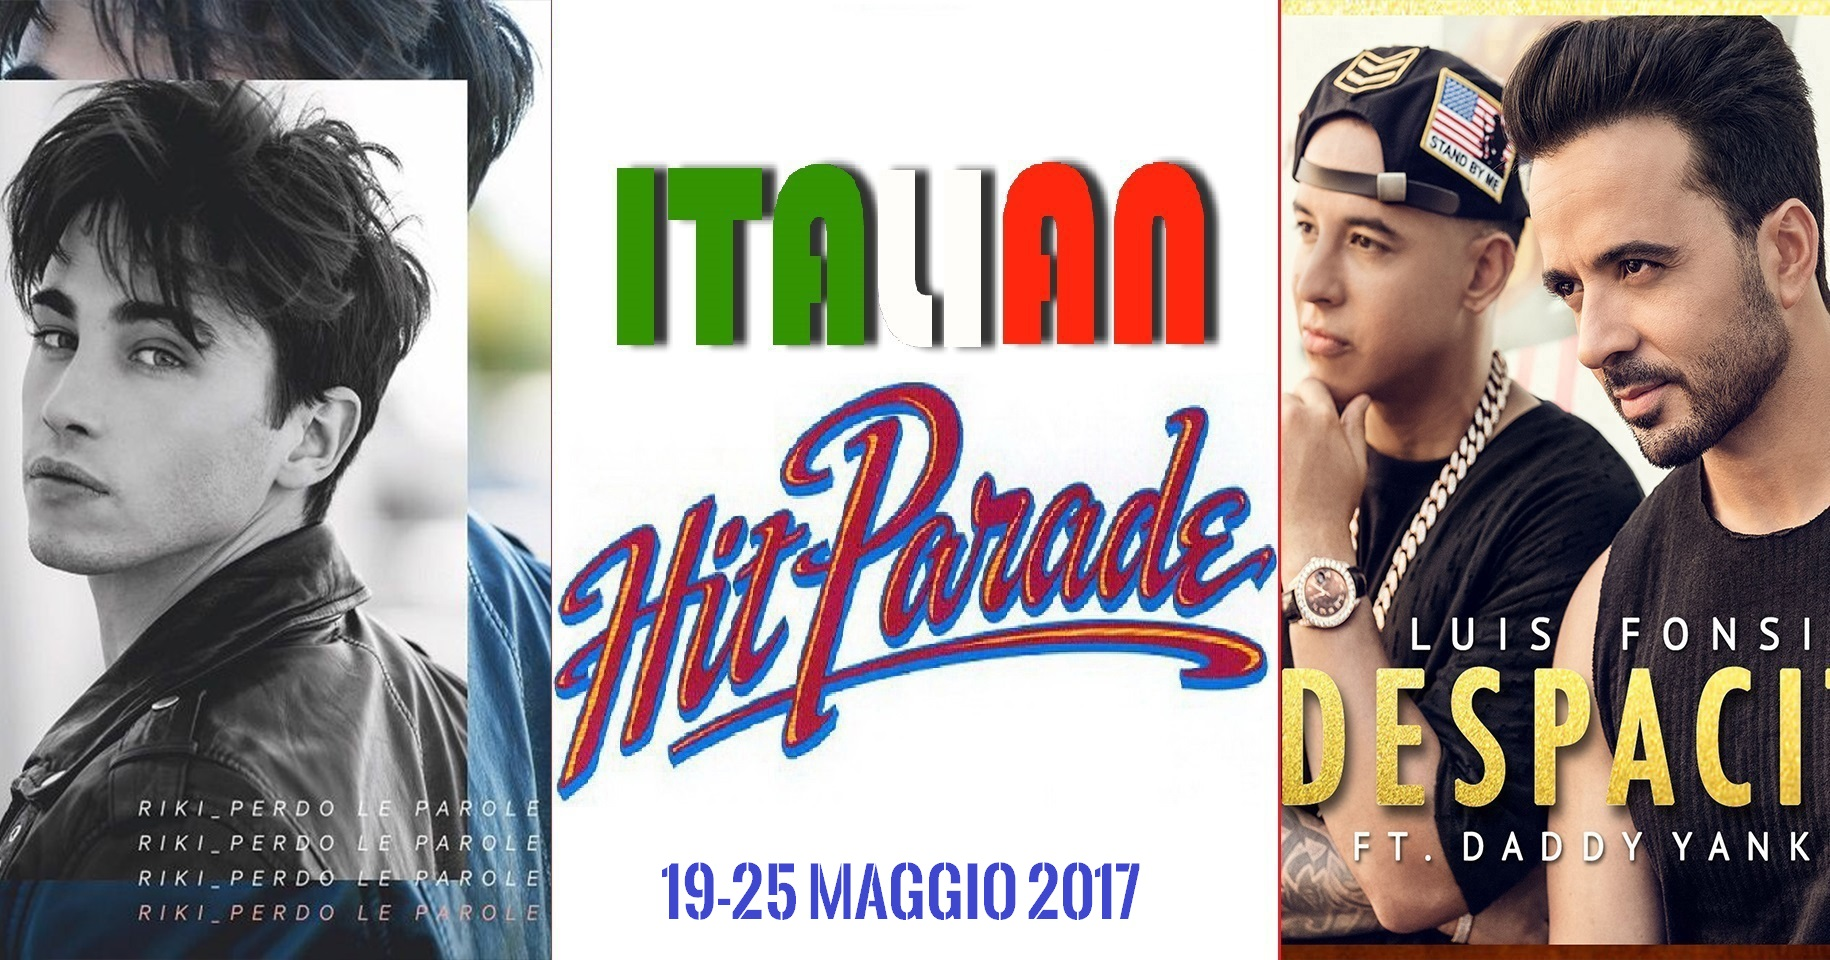 Hit Parade 26-05-17 Riki